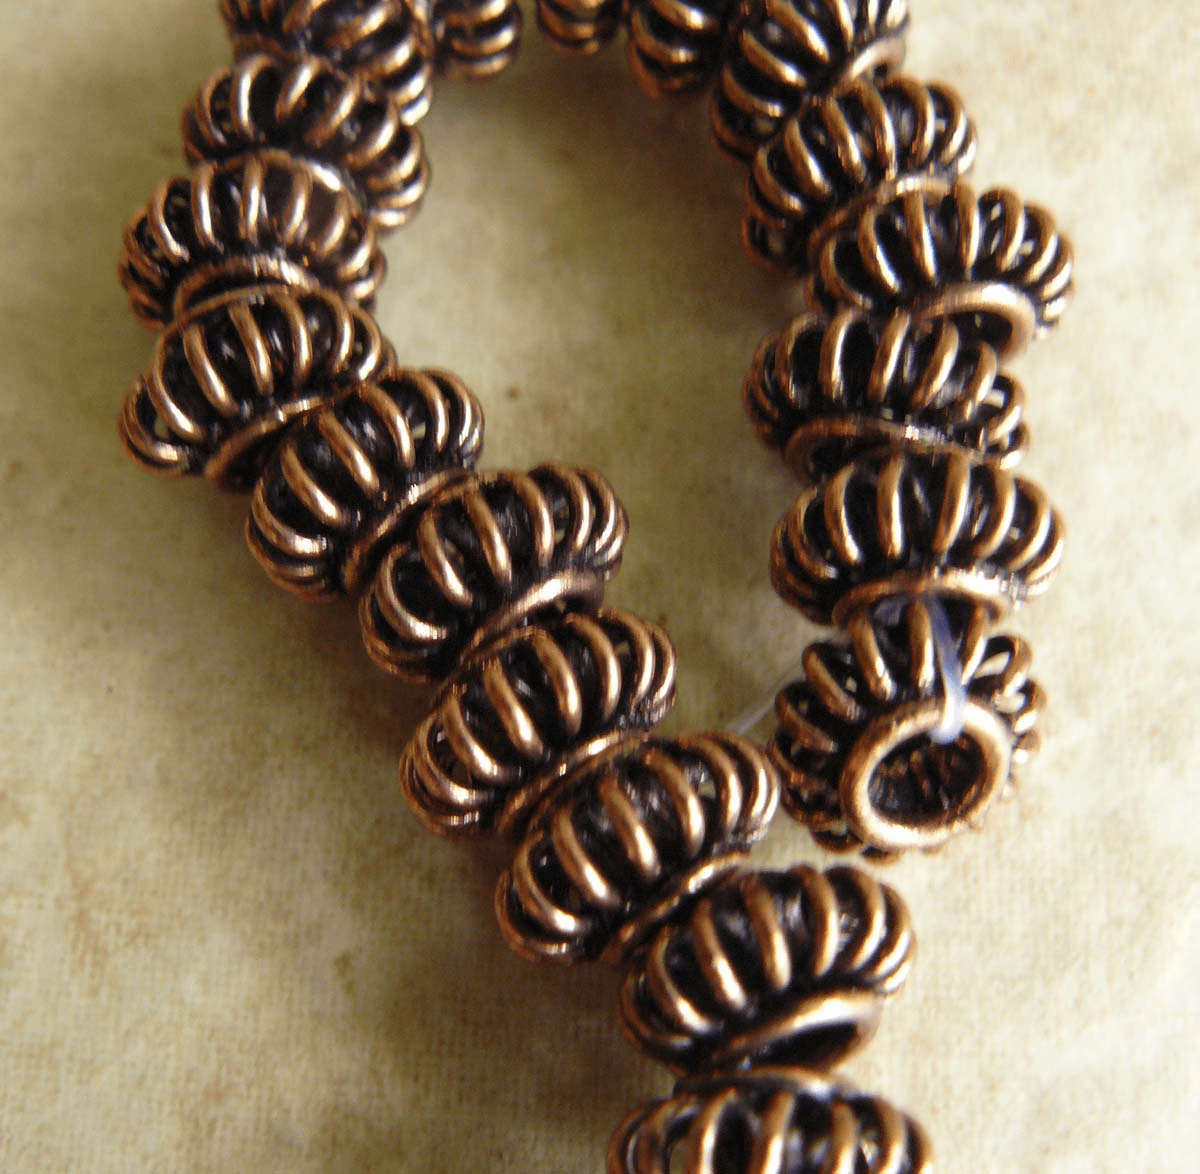 Copper basket beads 5x10mm 33 beads medium antique finish